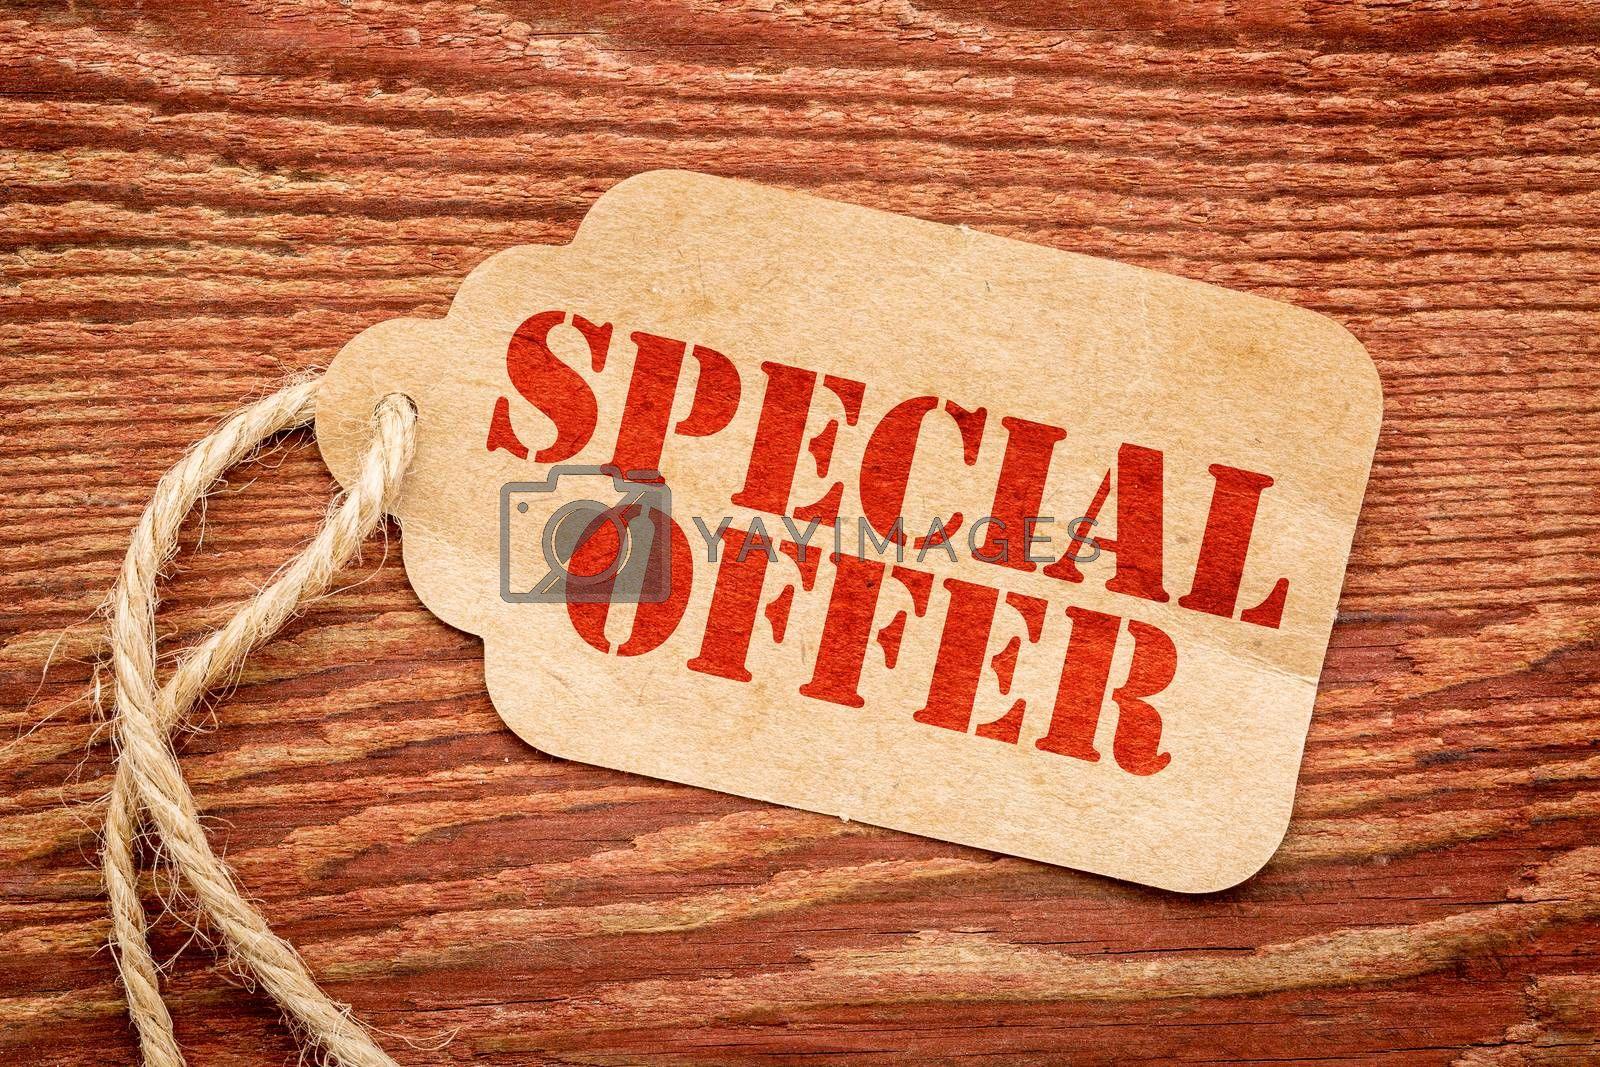 special offer sign a paper price tag against rustic red painted barn wood